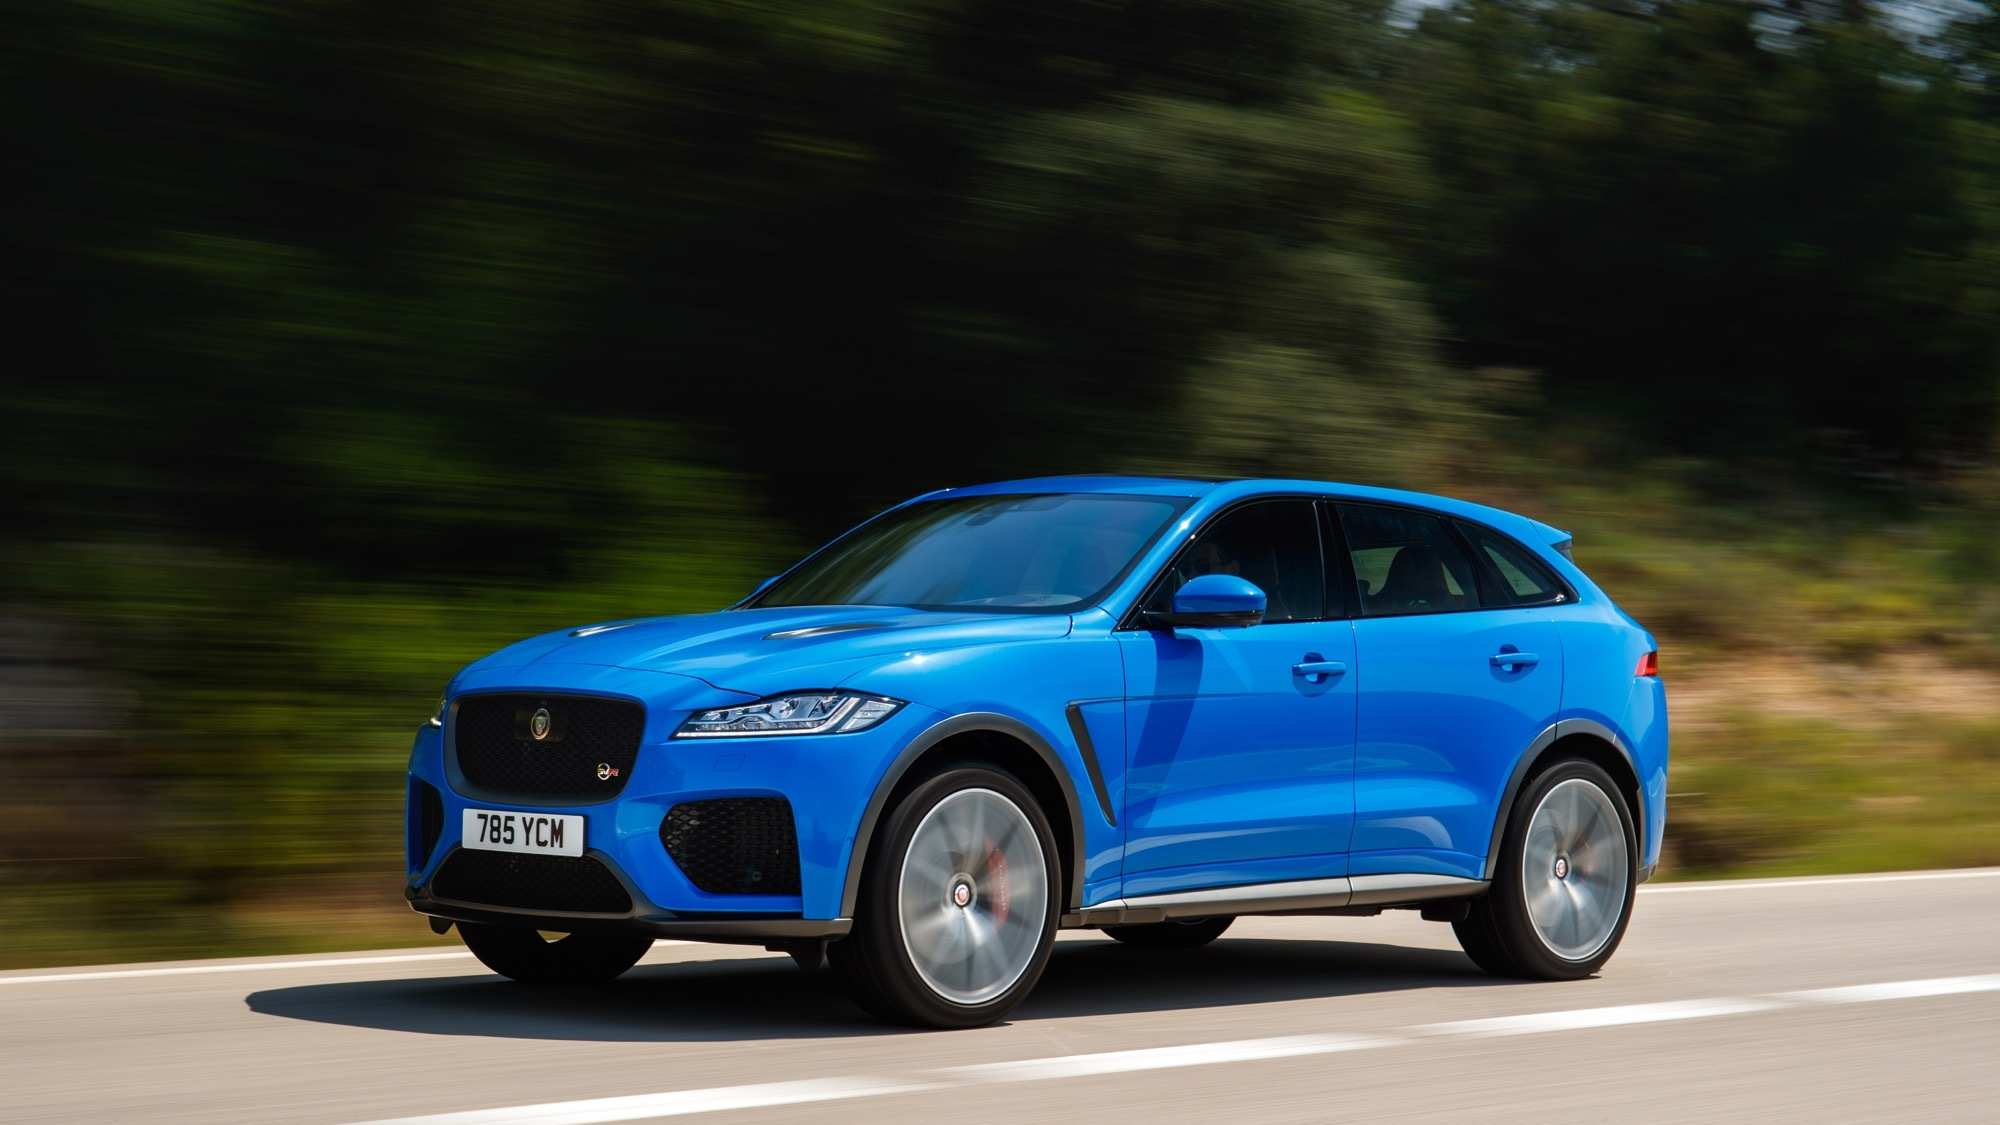 27 Best Jaguar I Pace 2020 Model 2 Prices